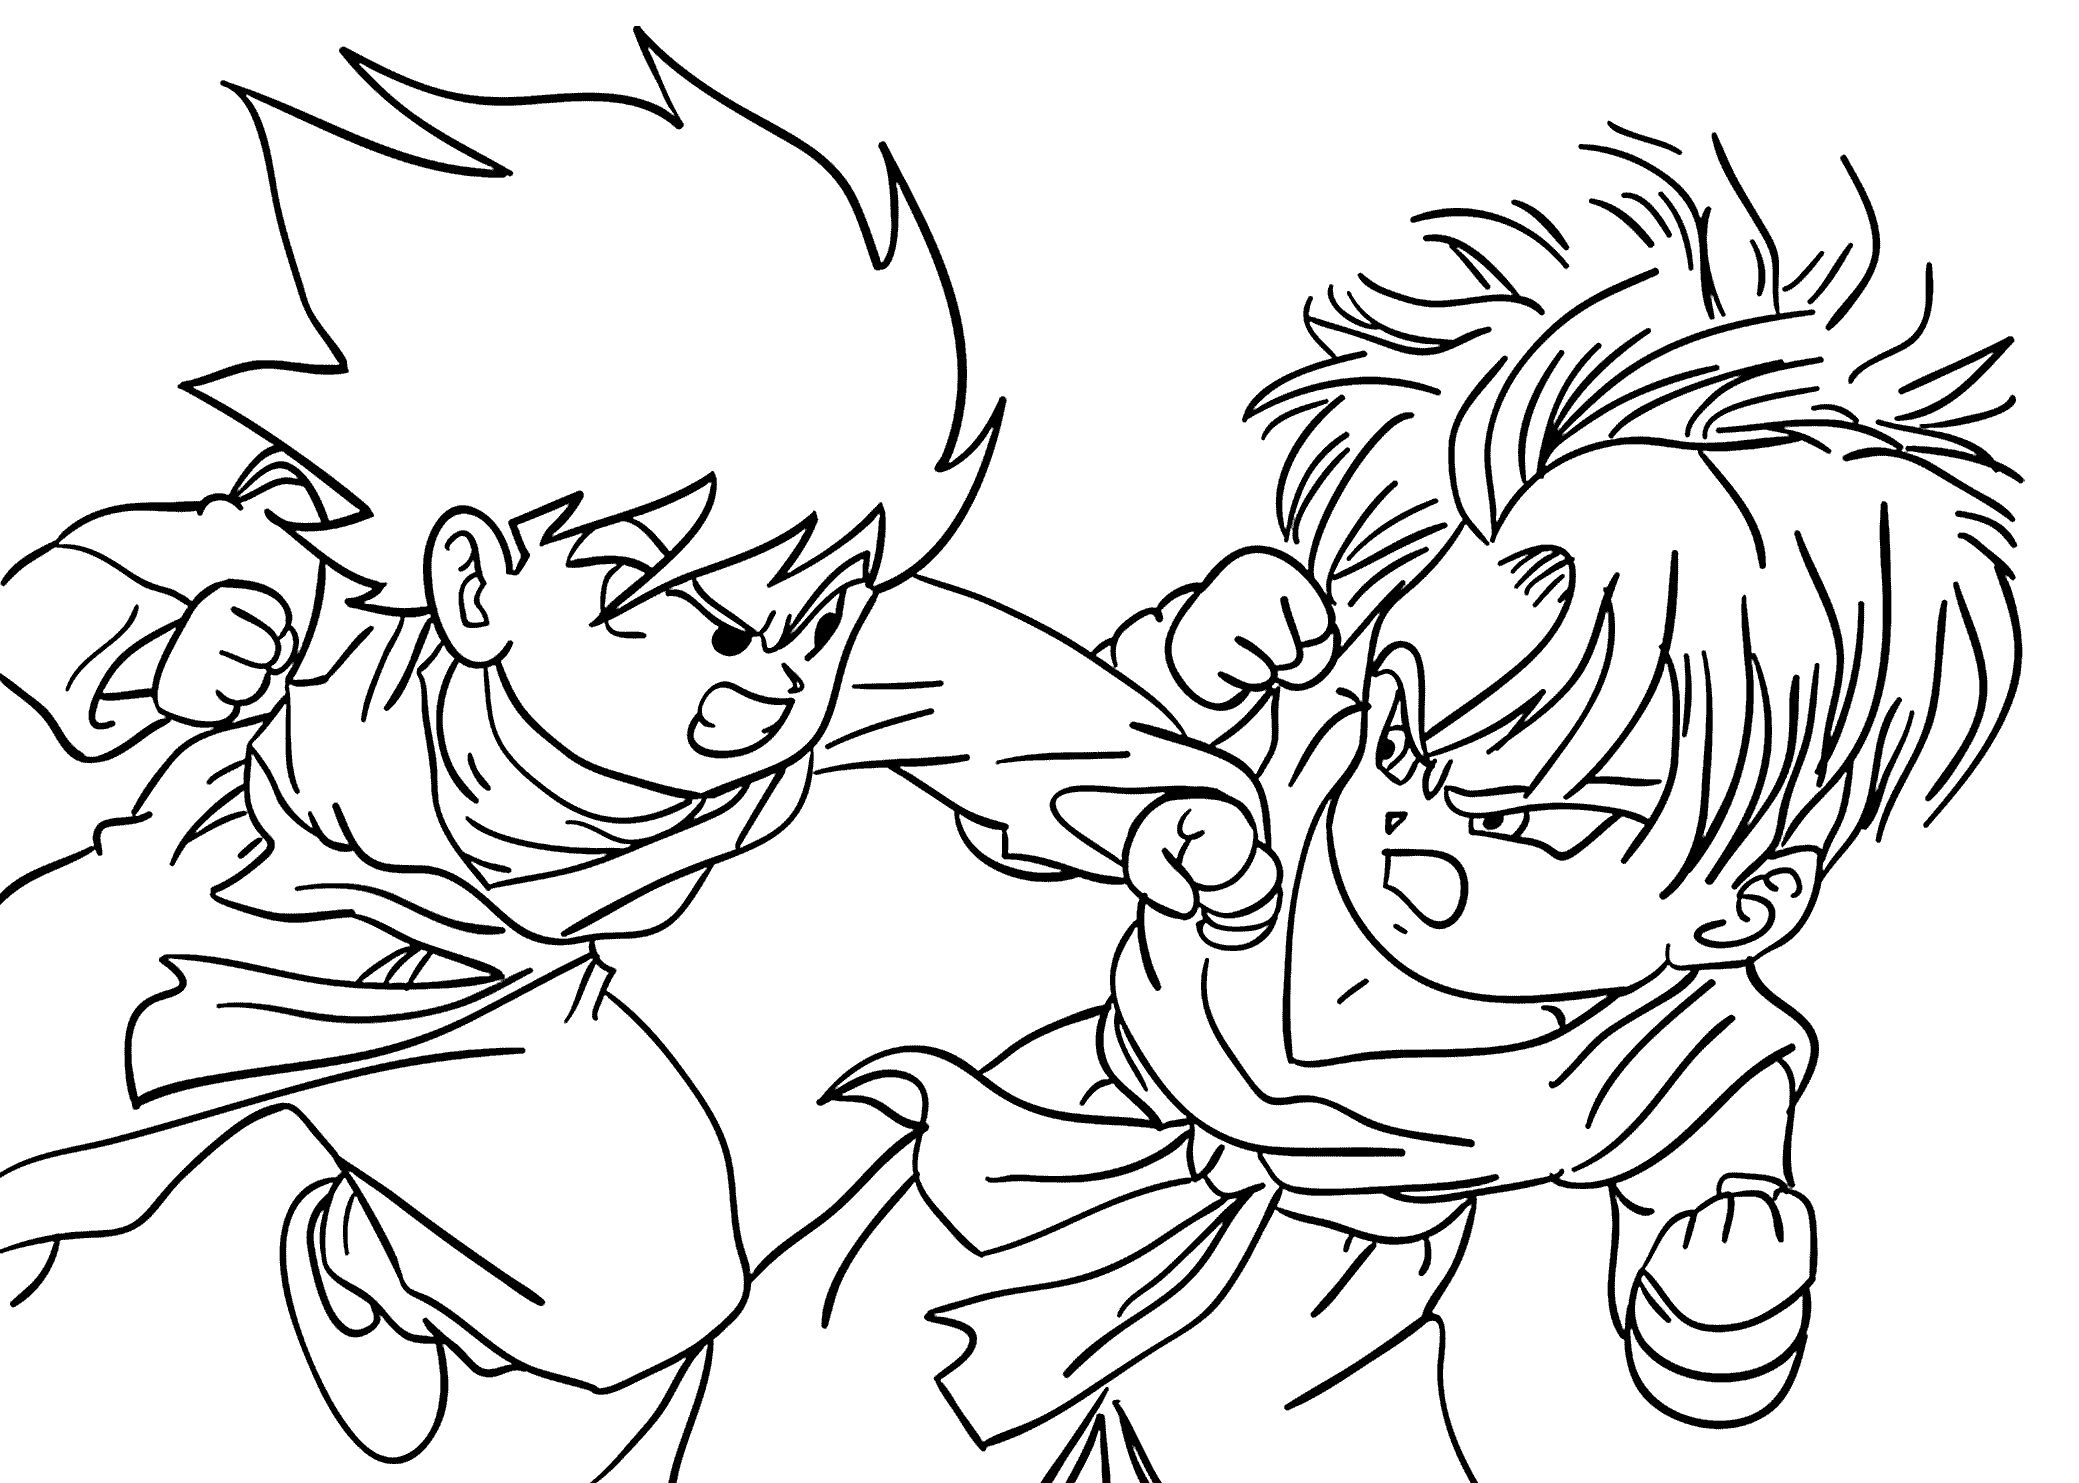 Dragon Ball Super Coloring Pages Printables Http Www Wallpaperartdesignhd Us Dragon Ball Super Colo Super Coloring Pages Coloring Pages Animal Coloring Pages